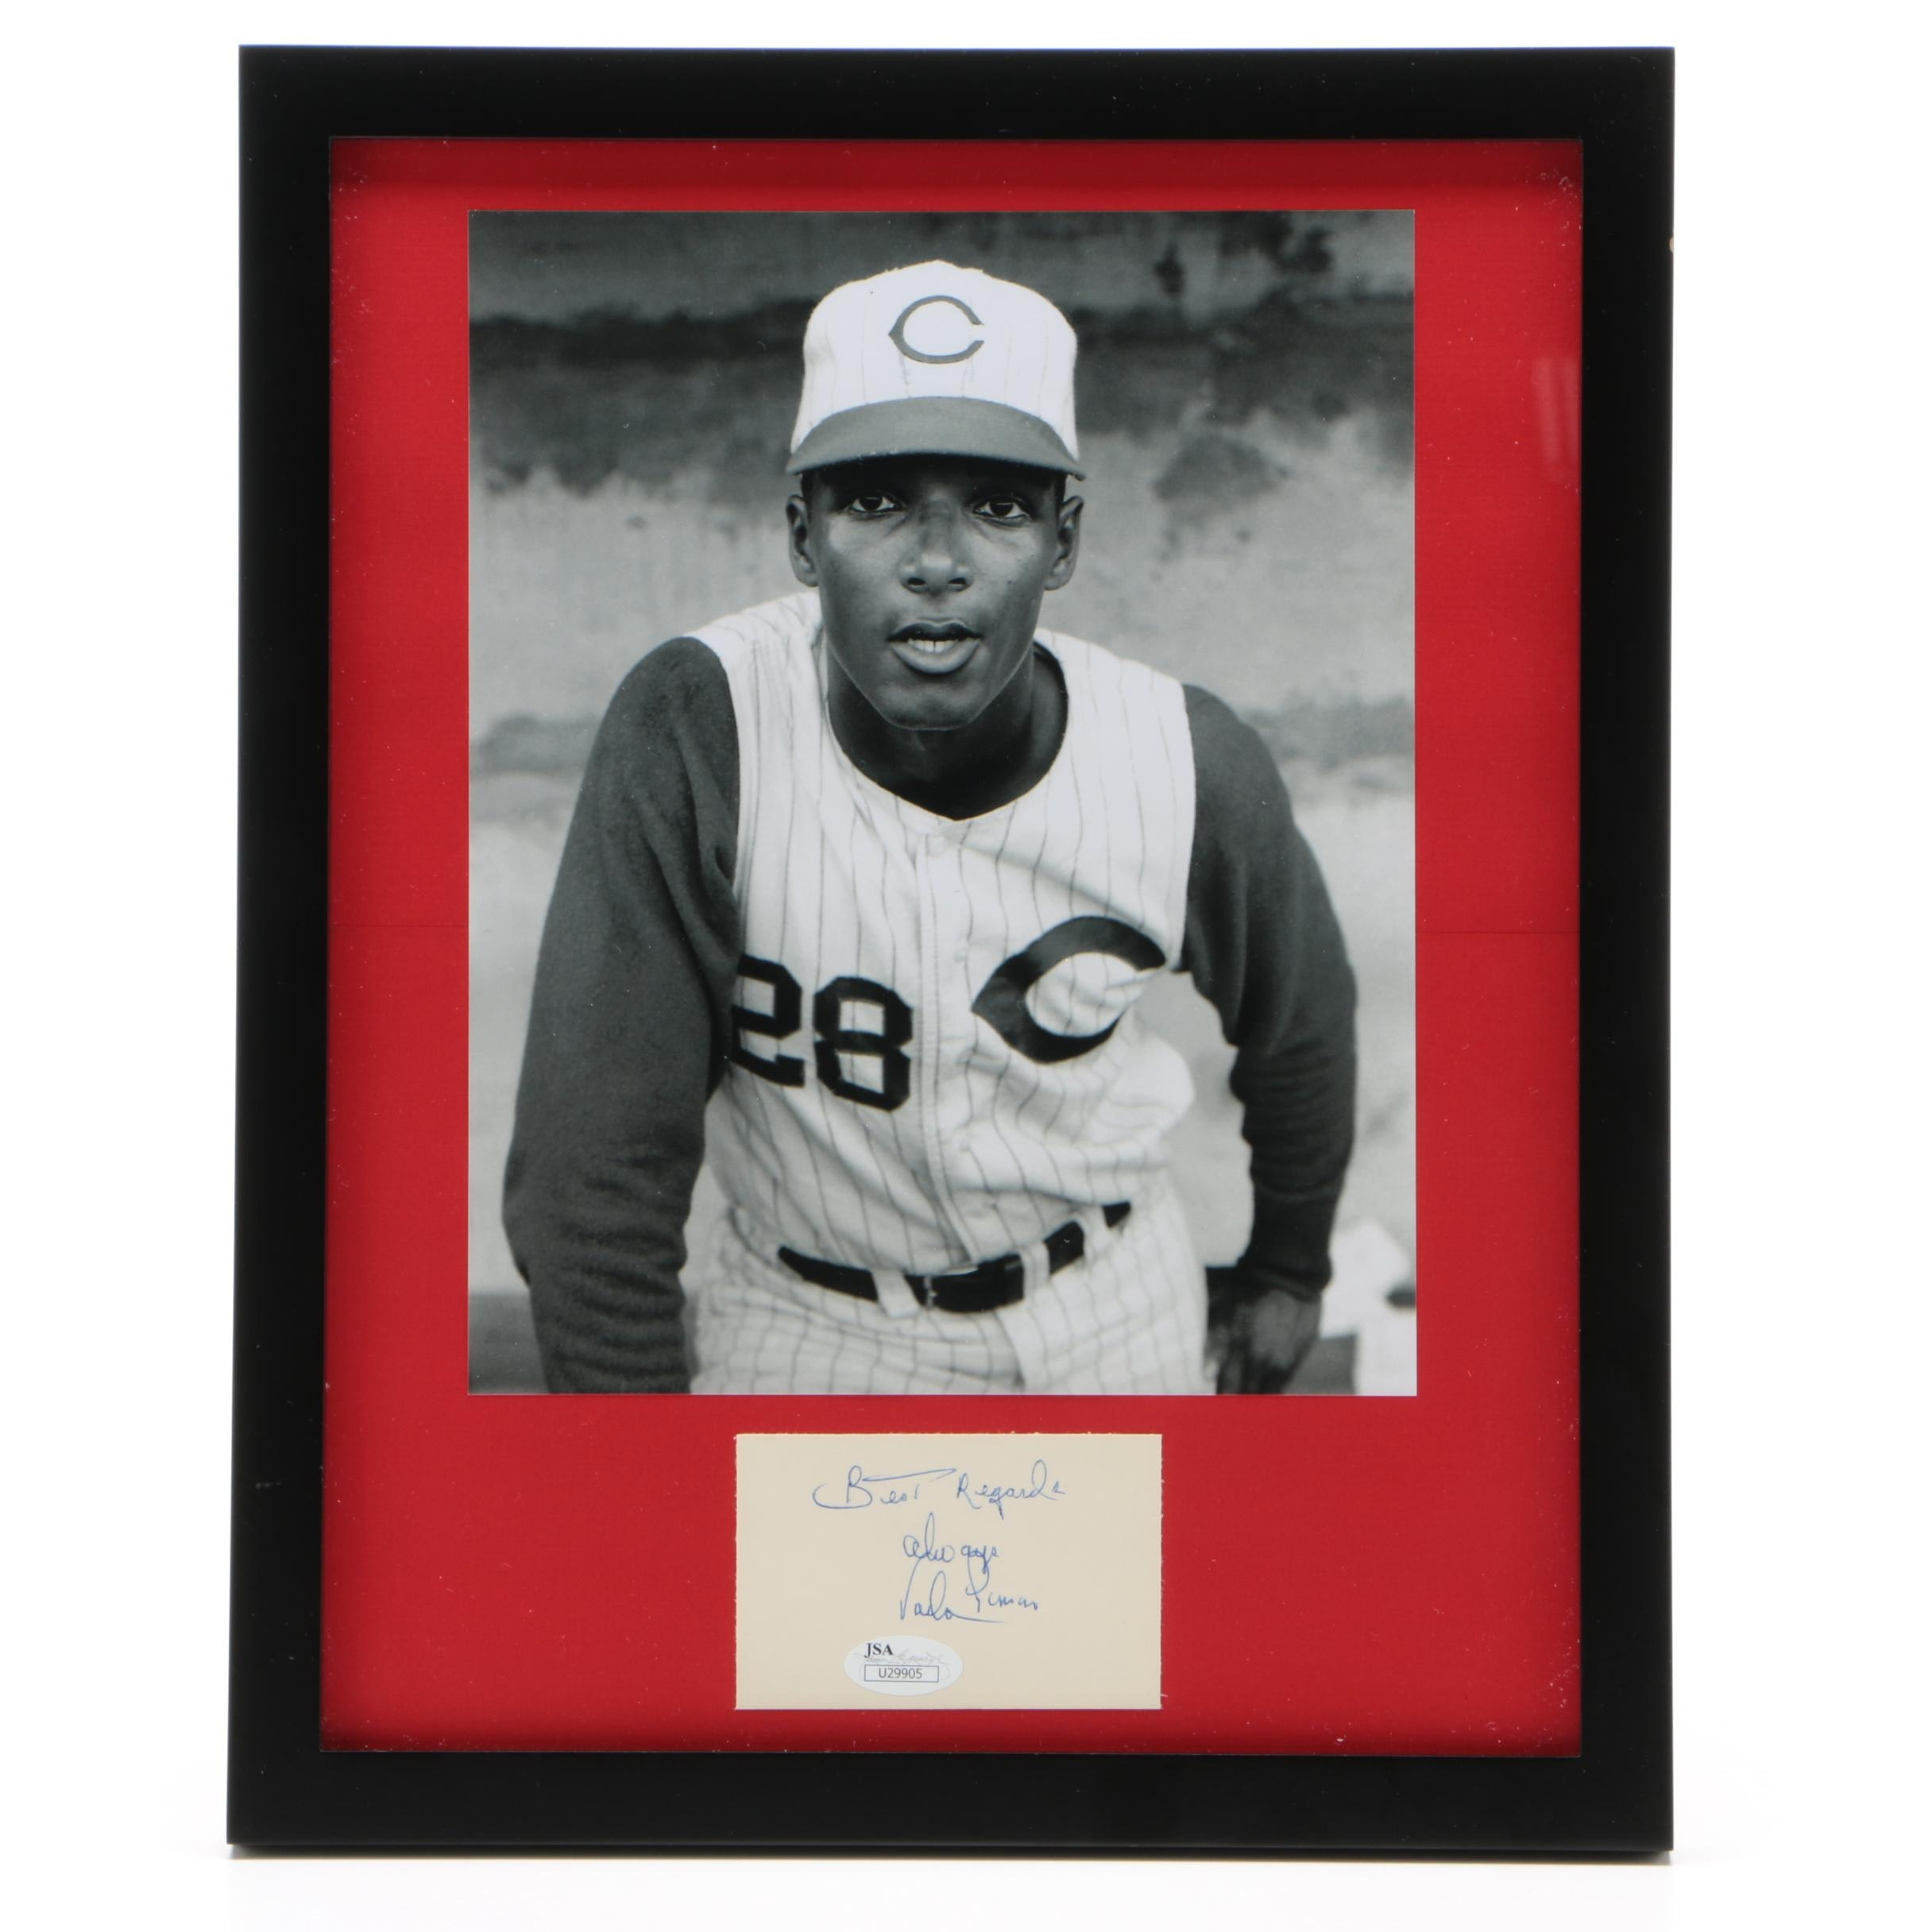 Vada Pinson of the Cincinnati Reds Framed Autograph and Photo JSA/COA